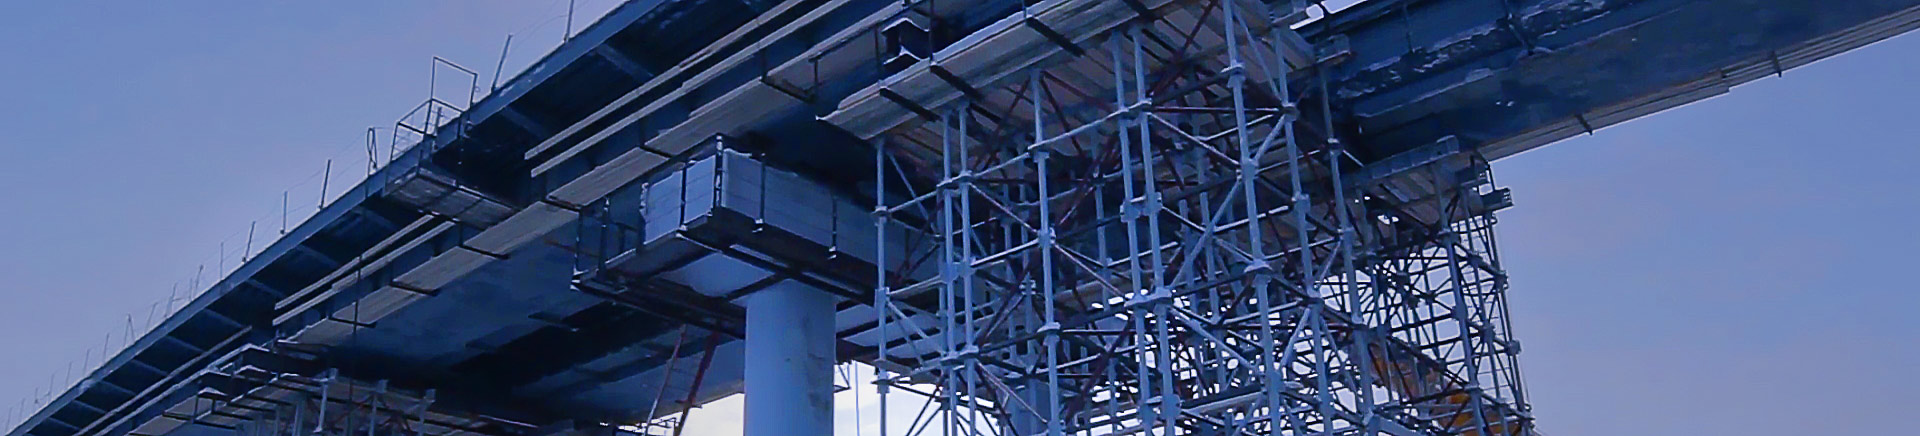 Structural-Shoring-Engineering-Header-Image-r2-1